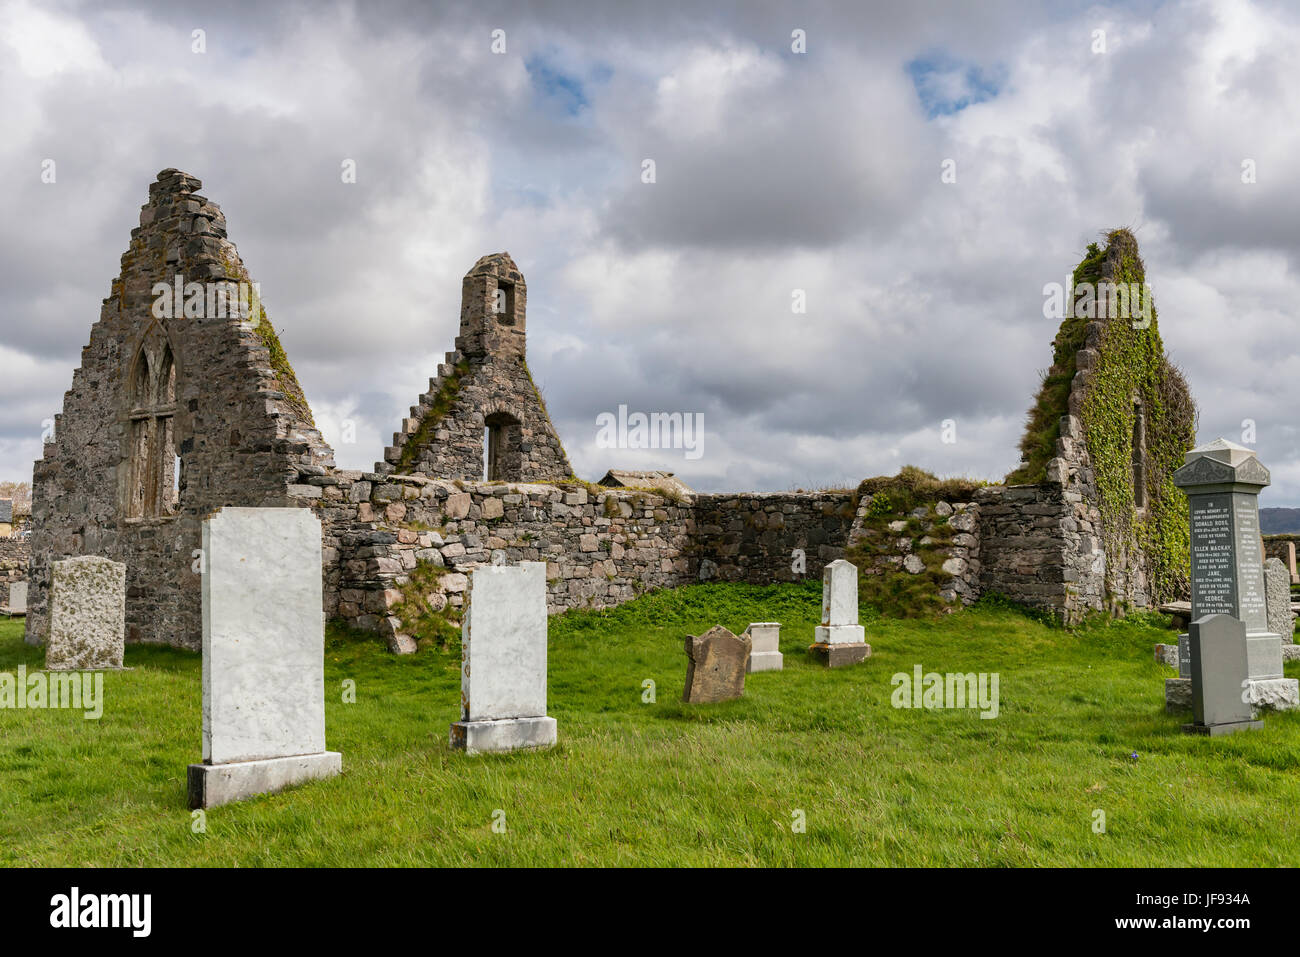 The ruined church at Balnakeil Bay - Stock Image